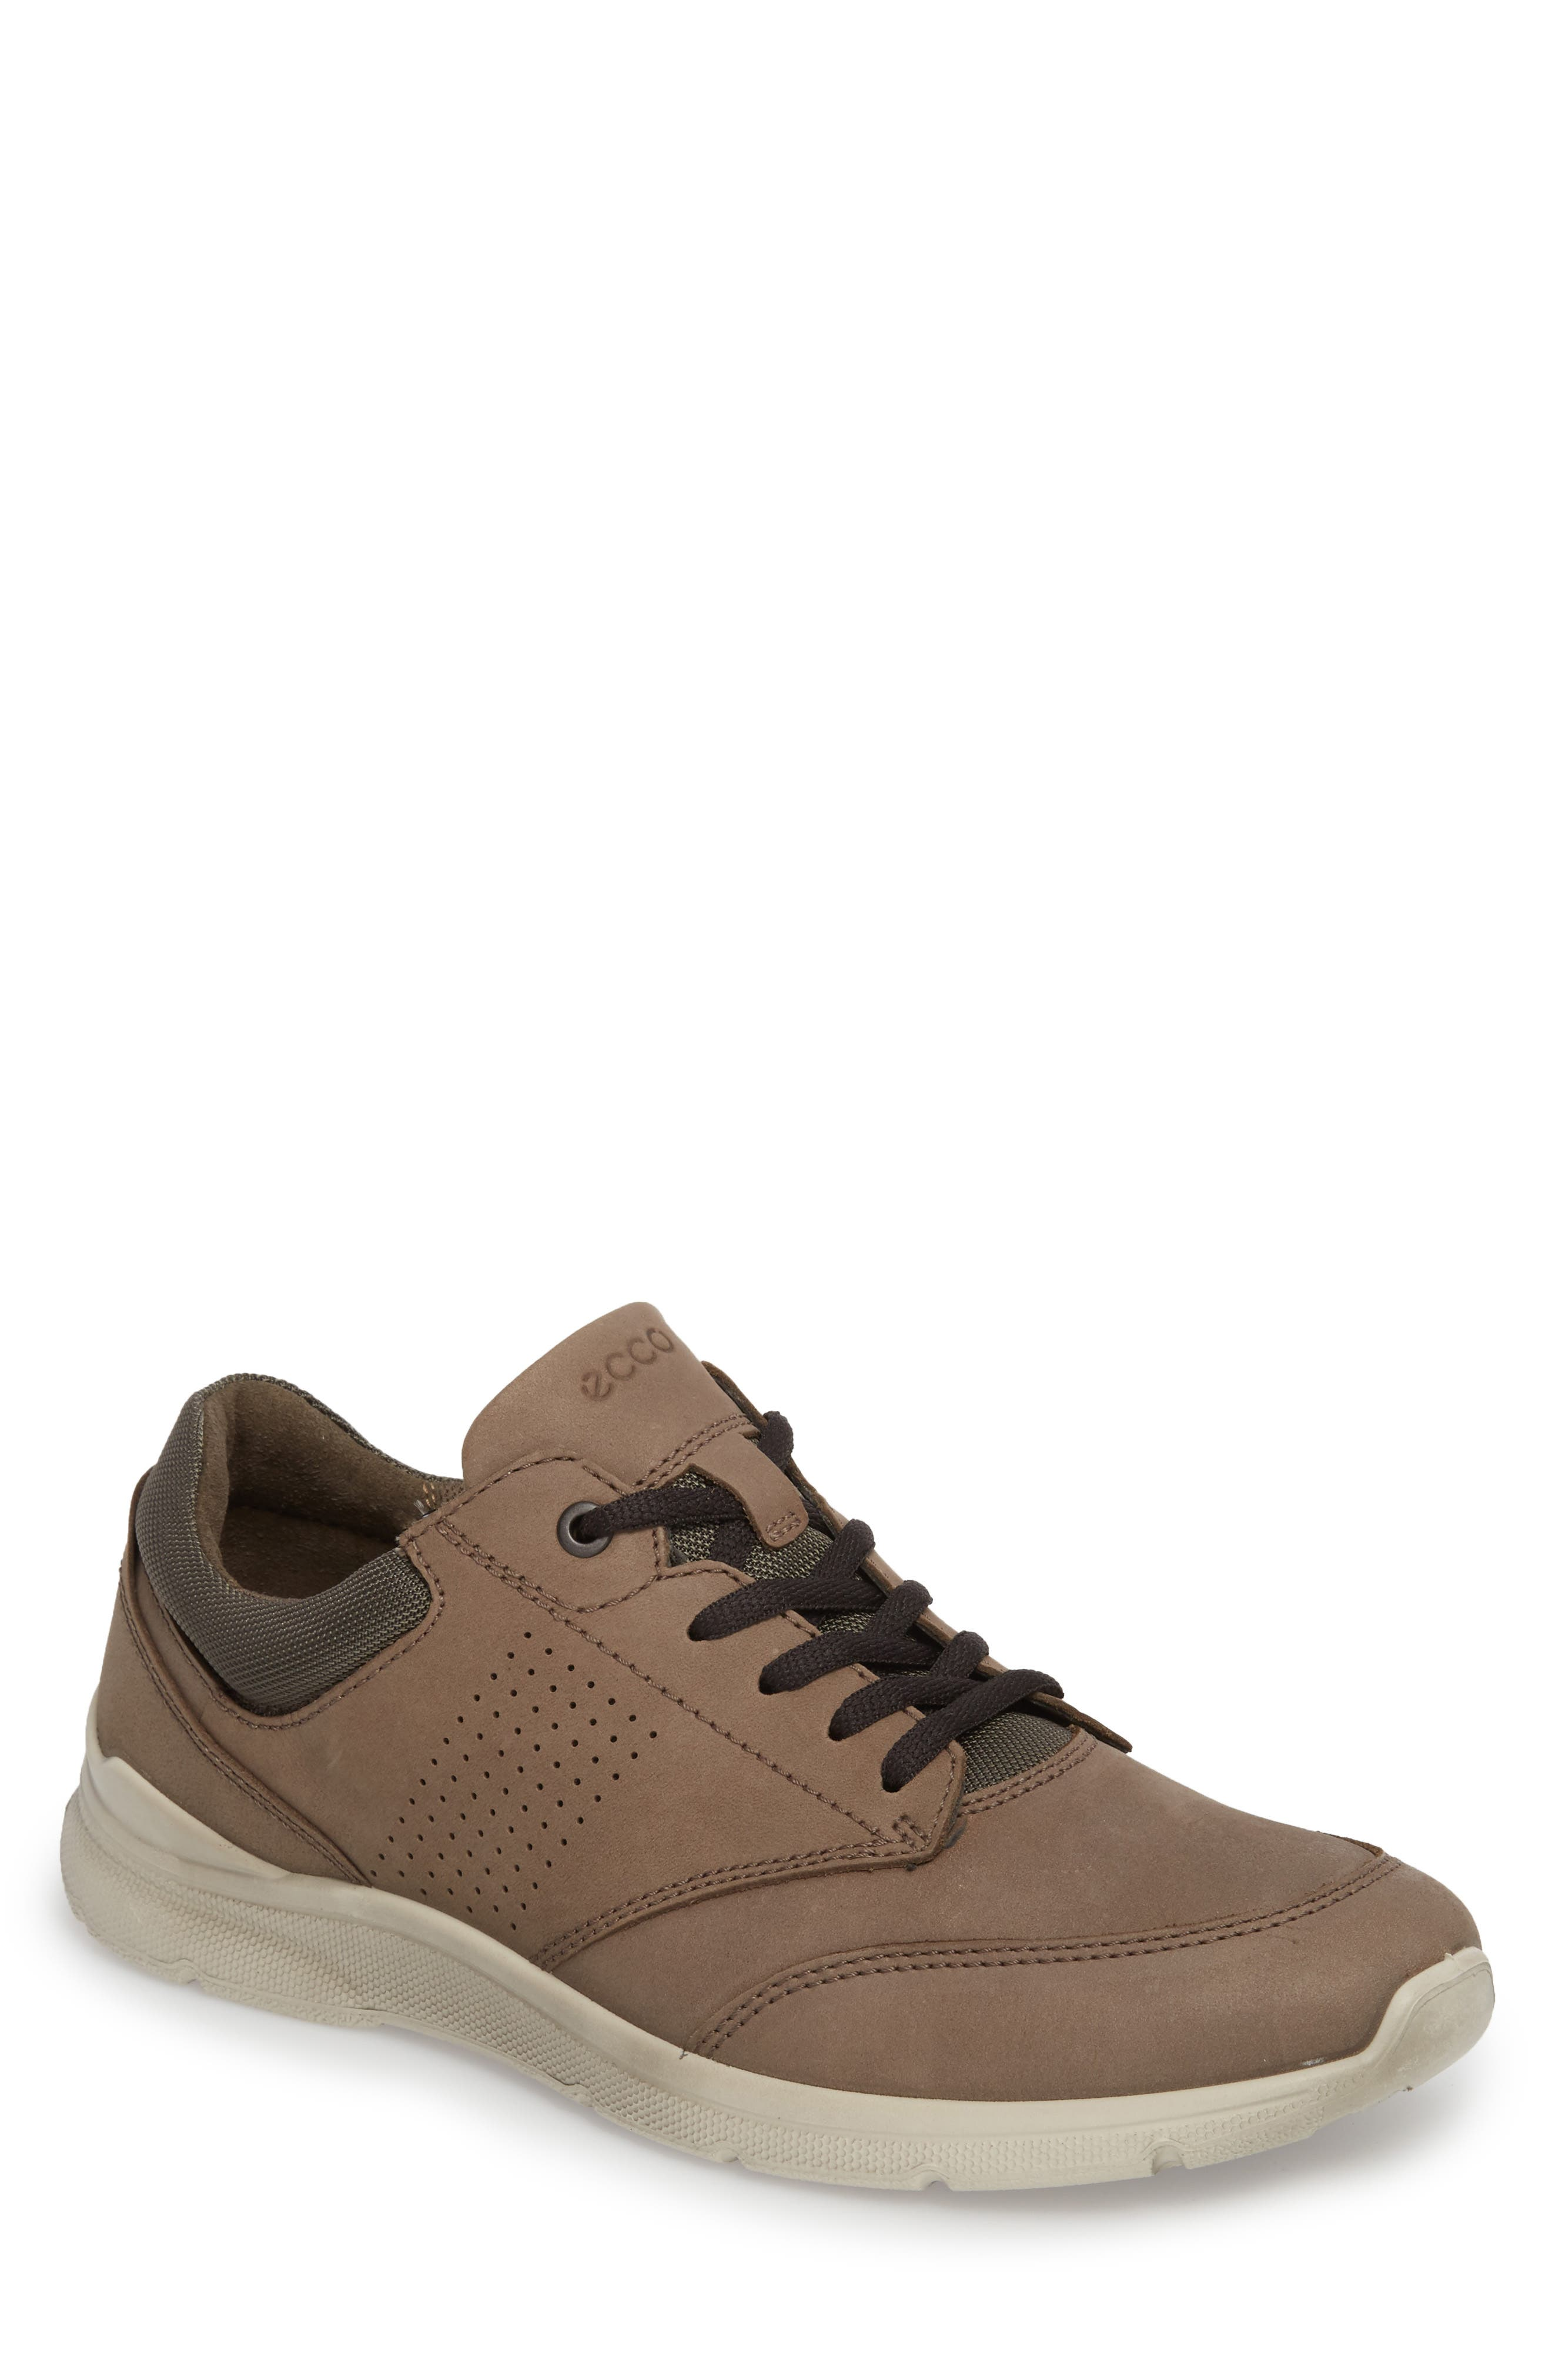 Irving Sneaker,                         Main,                         color, DARK CLAY LEATHER